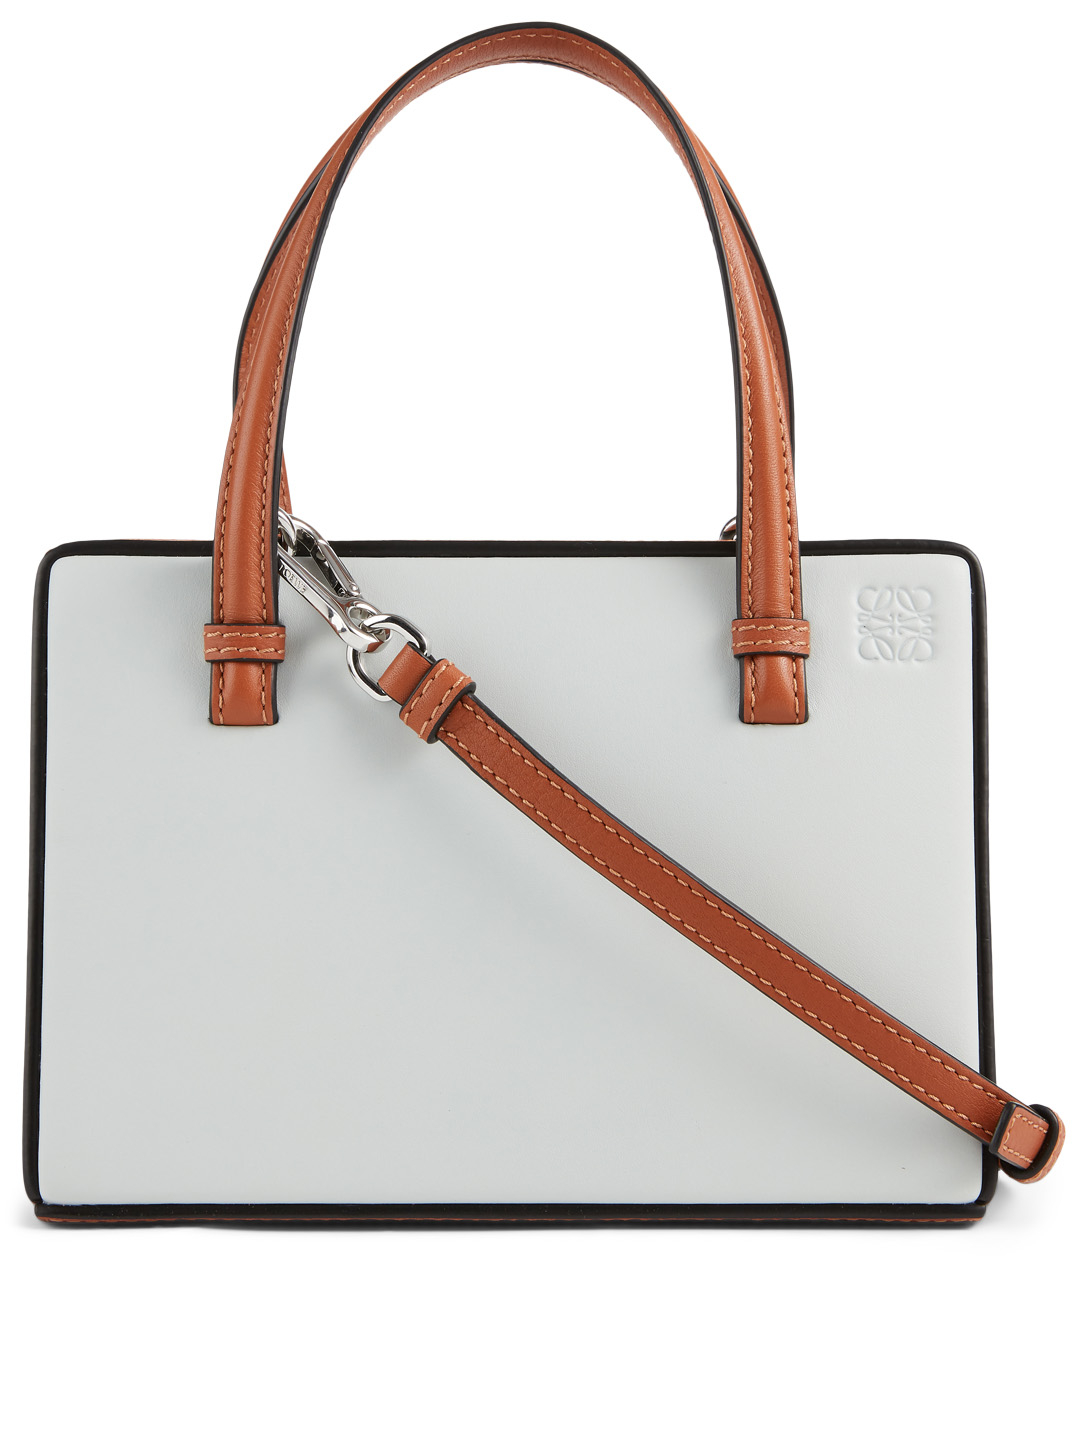 LOEWE Small Postal Leather Bag Women's White